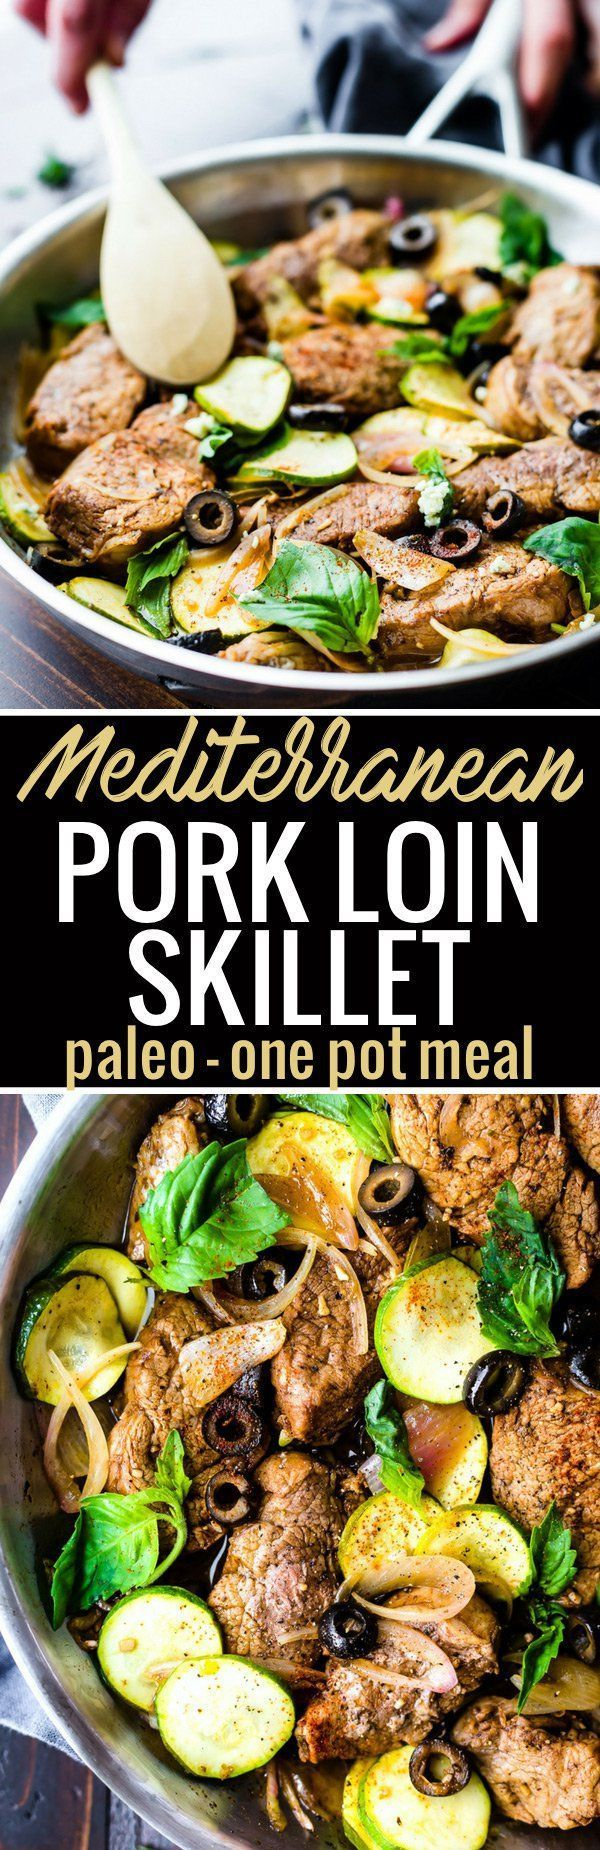 This Mediterranean Marinated Balsamic Pork Loin Skillet with vegetables makes for an easy one pan meal! Veggie Packed, Nourishing, Paleo, and ready 45 minutes. You and your family will love  this flavorful pork loin skillet dish in a tangy balsamic marinade.  http://www.cottercrunch.com